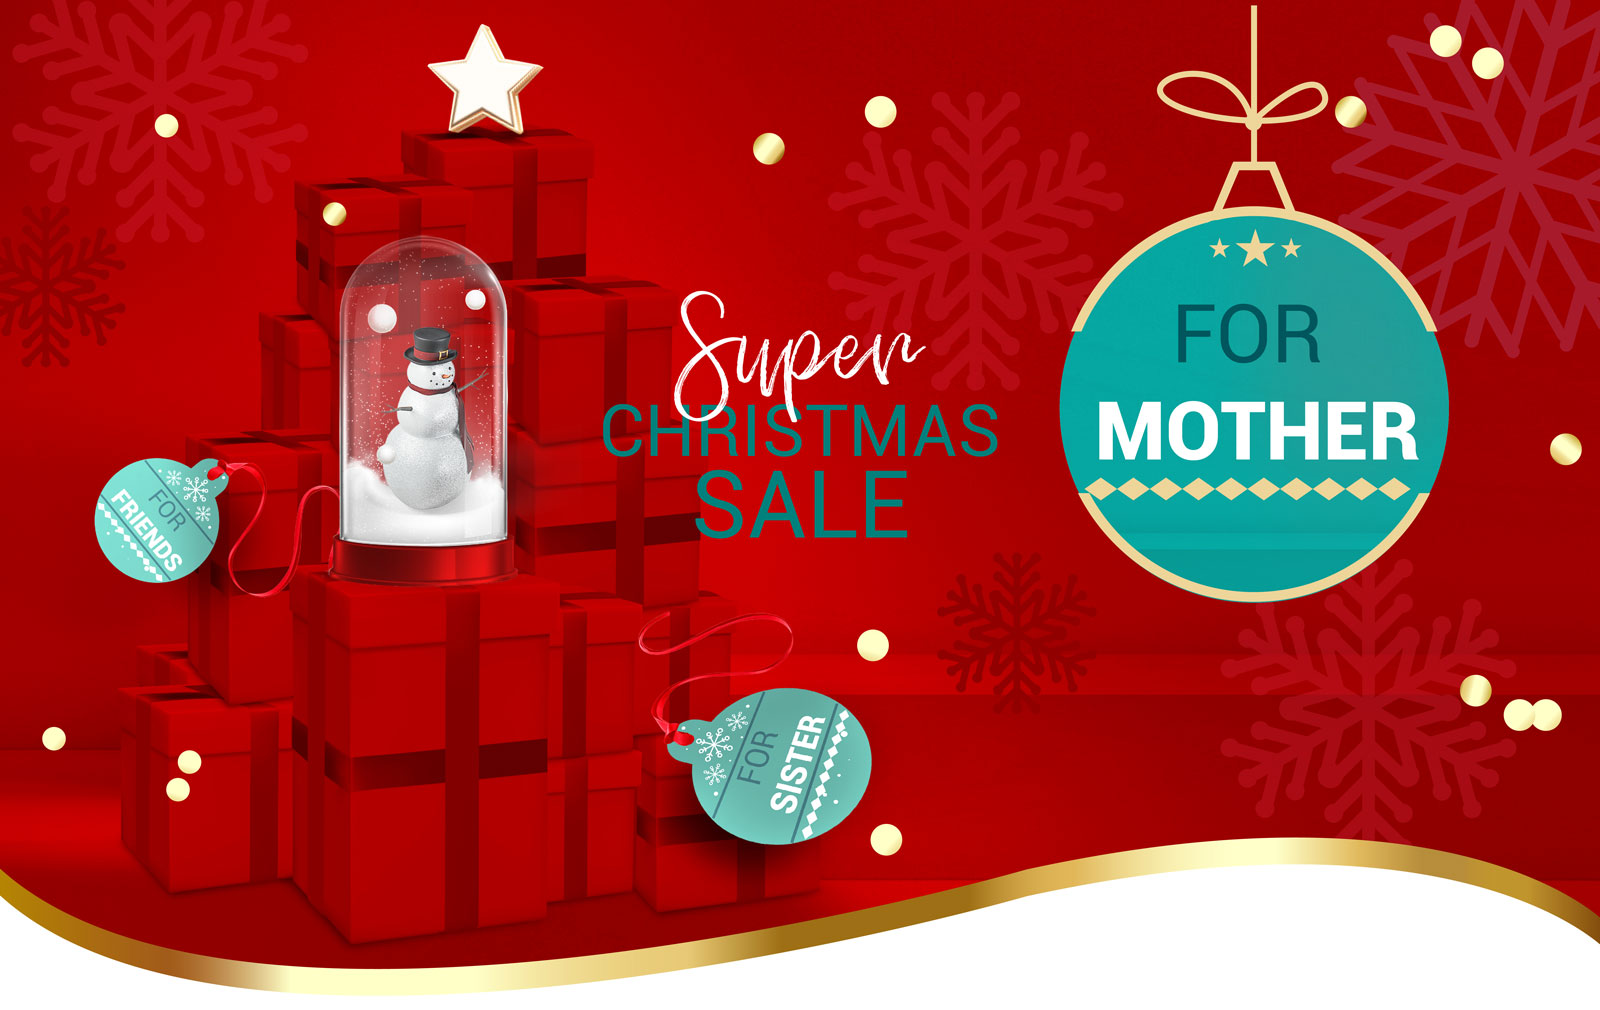 super Christmas sale Gift Guide for mother